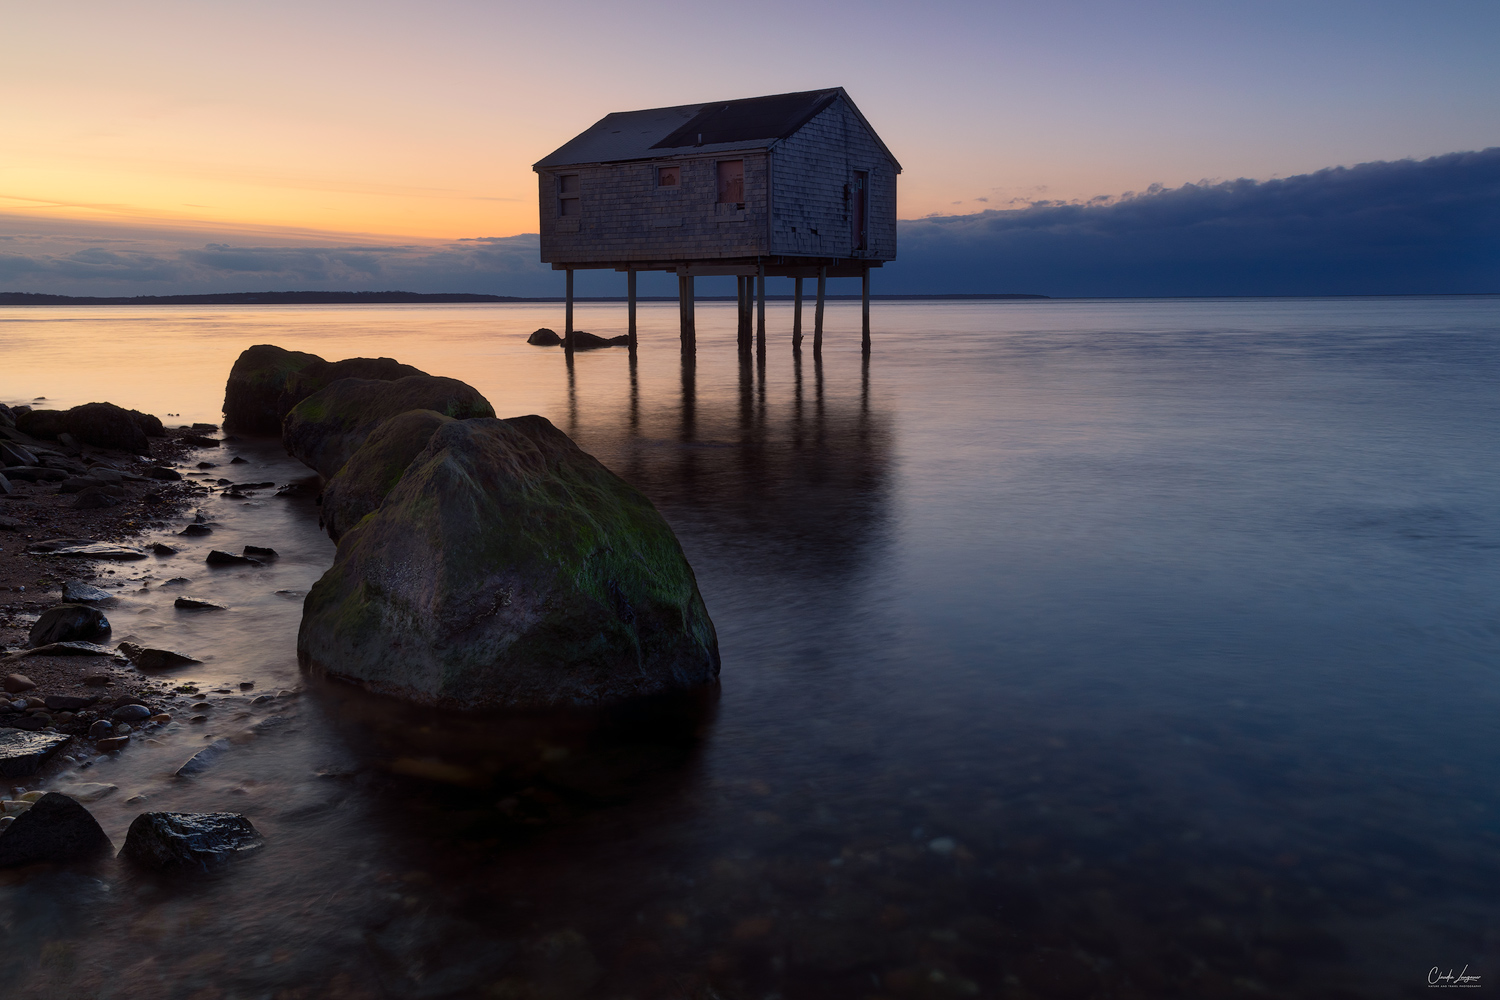 View of the House On Stilts in Long Island in New York at sunset.